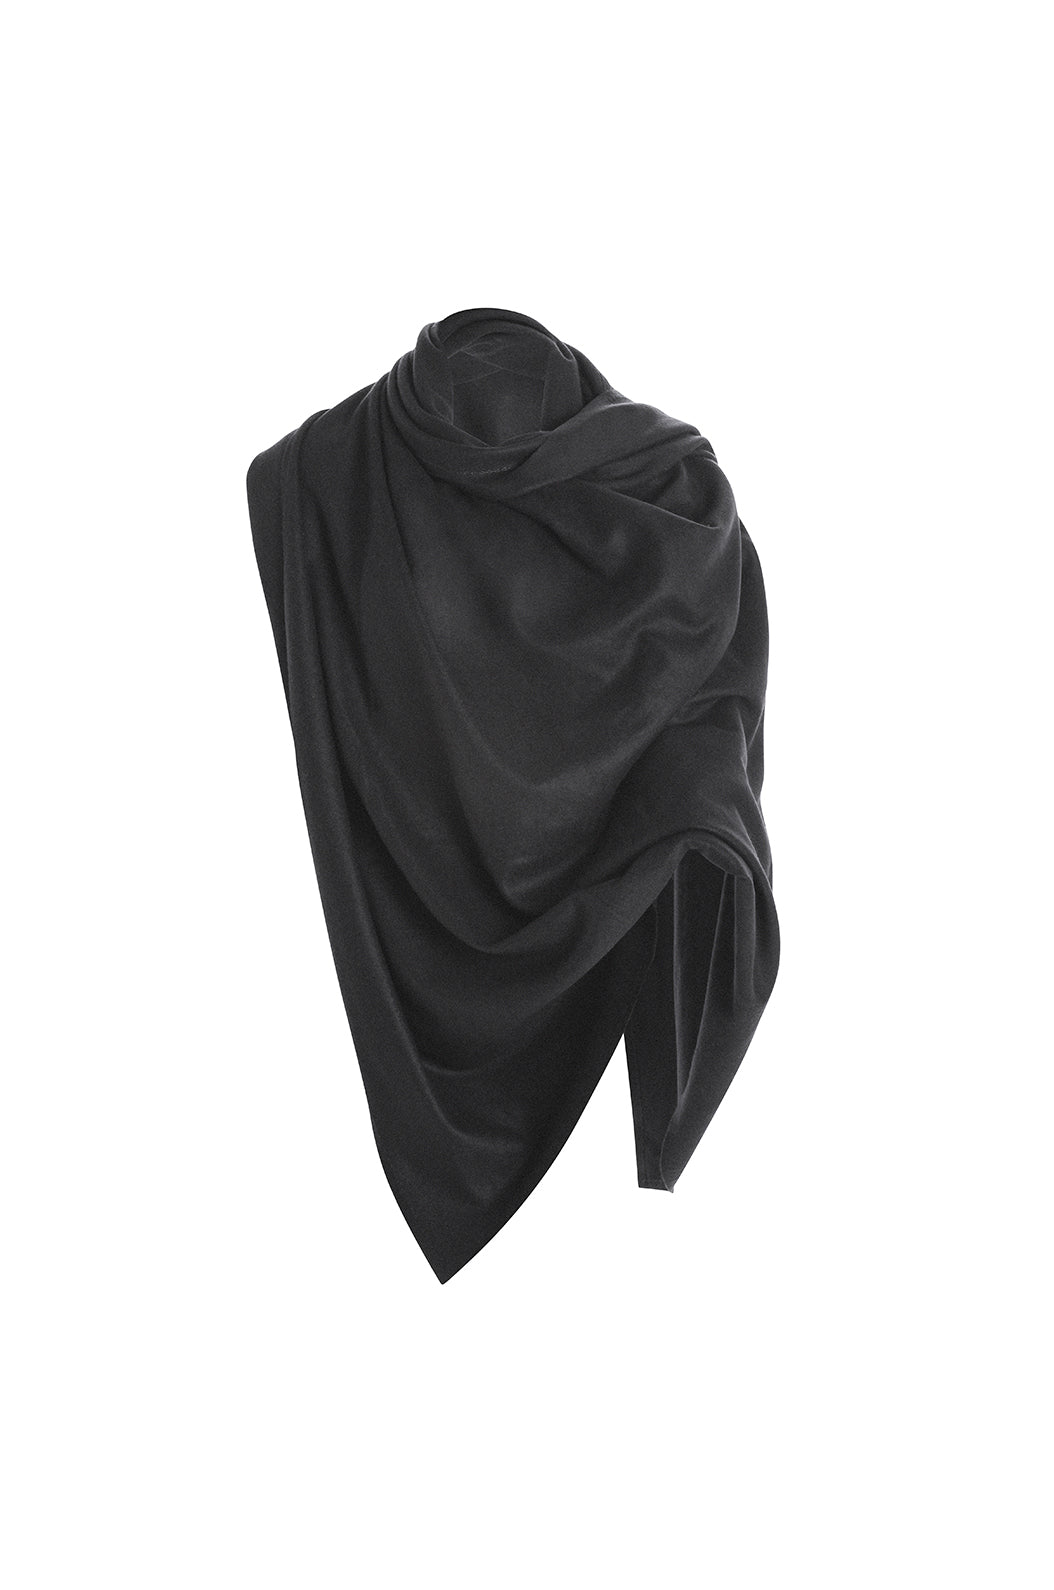 Luxury loungewear - ITALIAN CASHMERE  TRAVEL WRAP - PHANTOM | ROYL